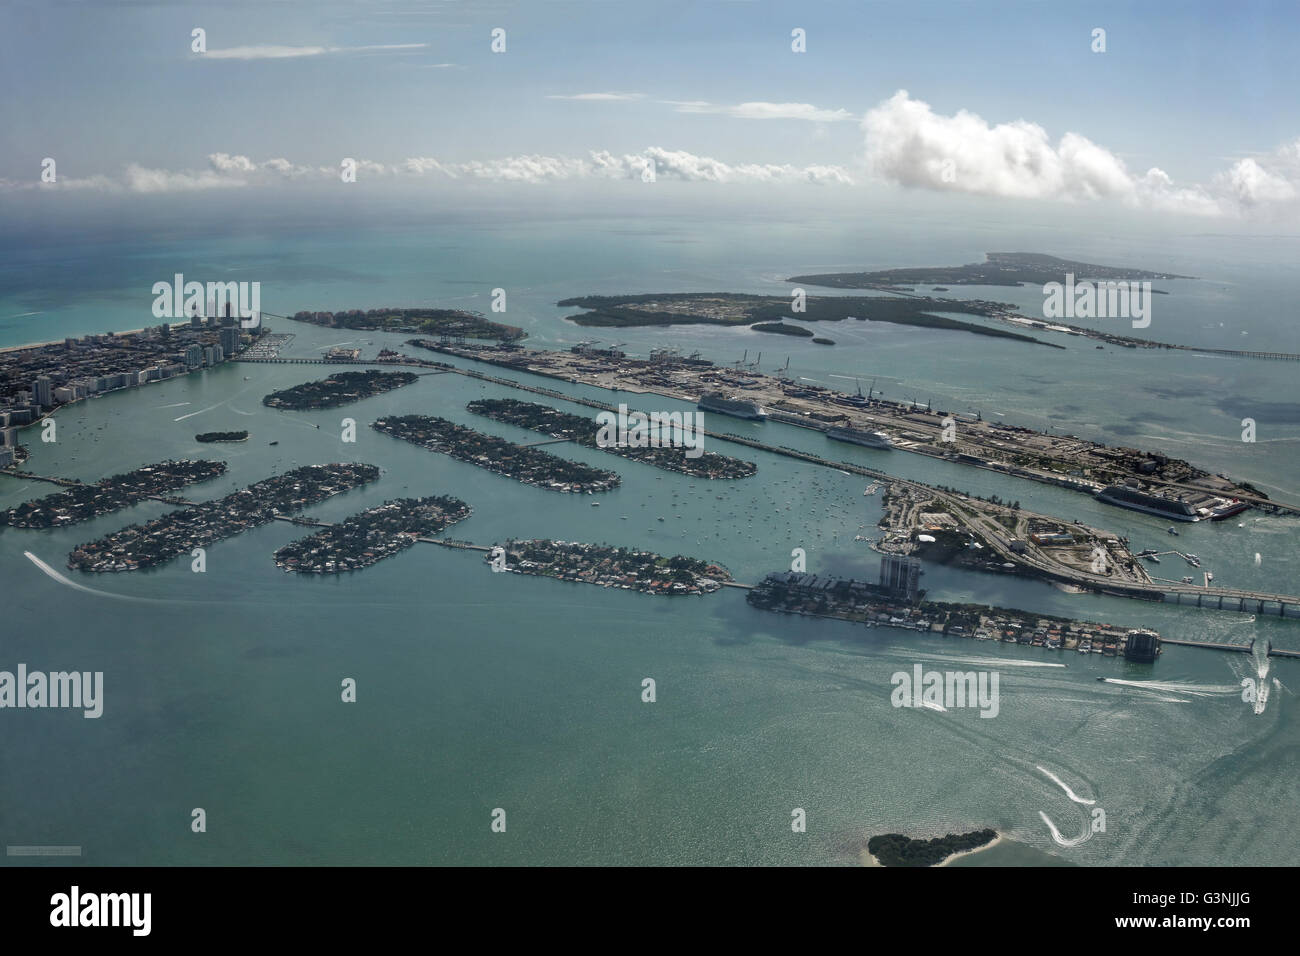 Aerial view, Venetian Islands, Dodge Island behind, harbour, Miami, Florida, USA - Stock Image